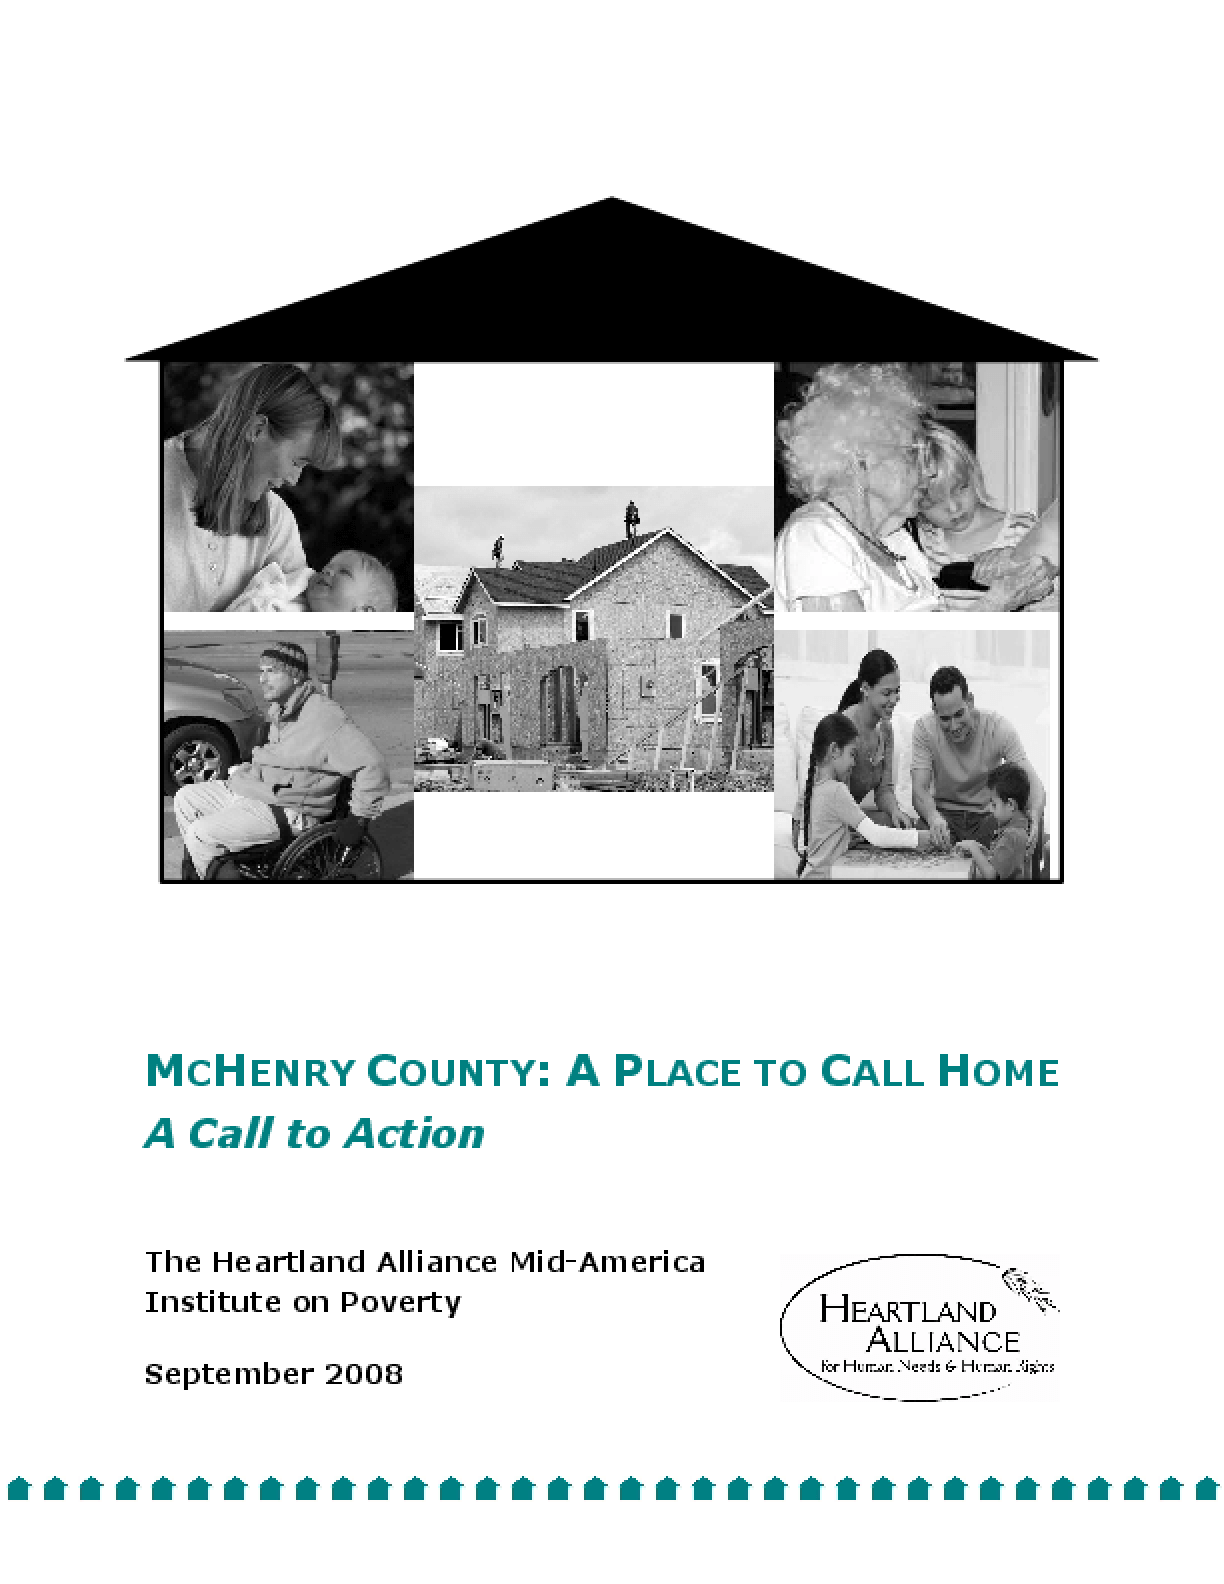 McHenry County: A Place to Call Home - Affordable Housing Needs Assessment